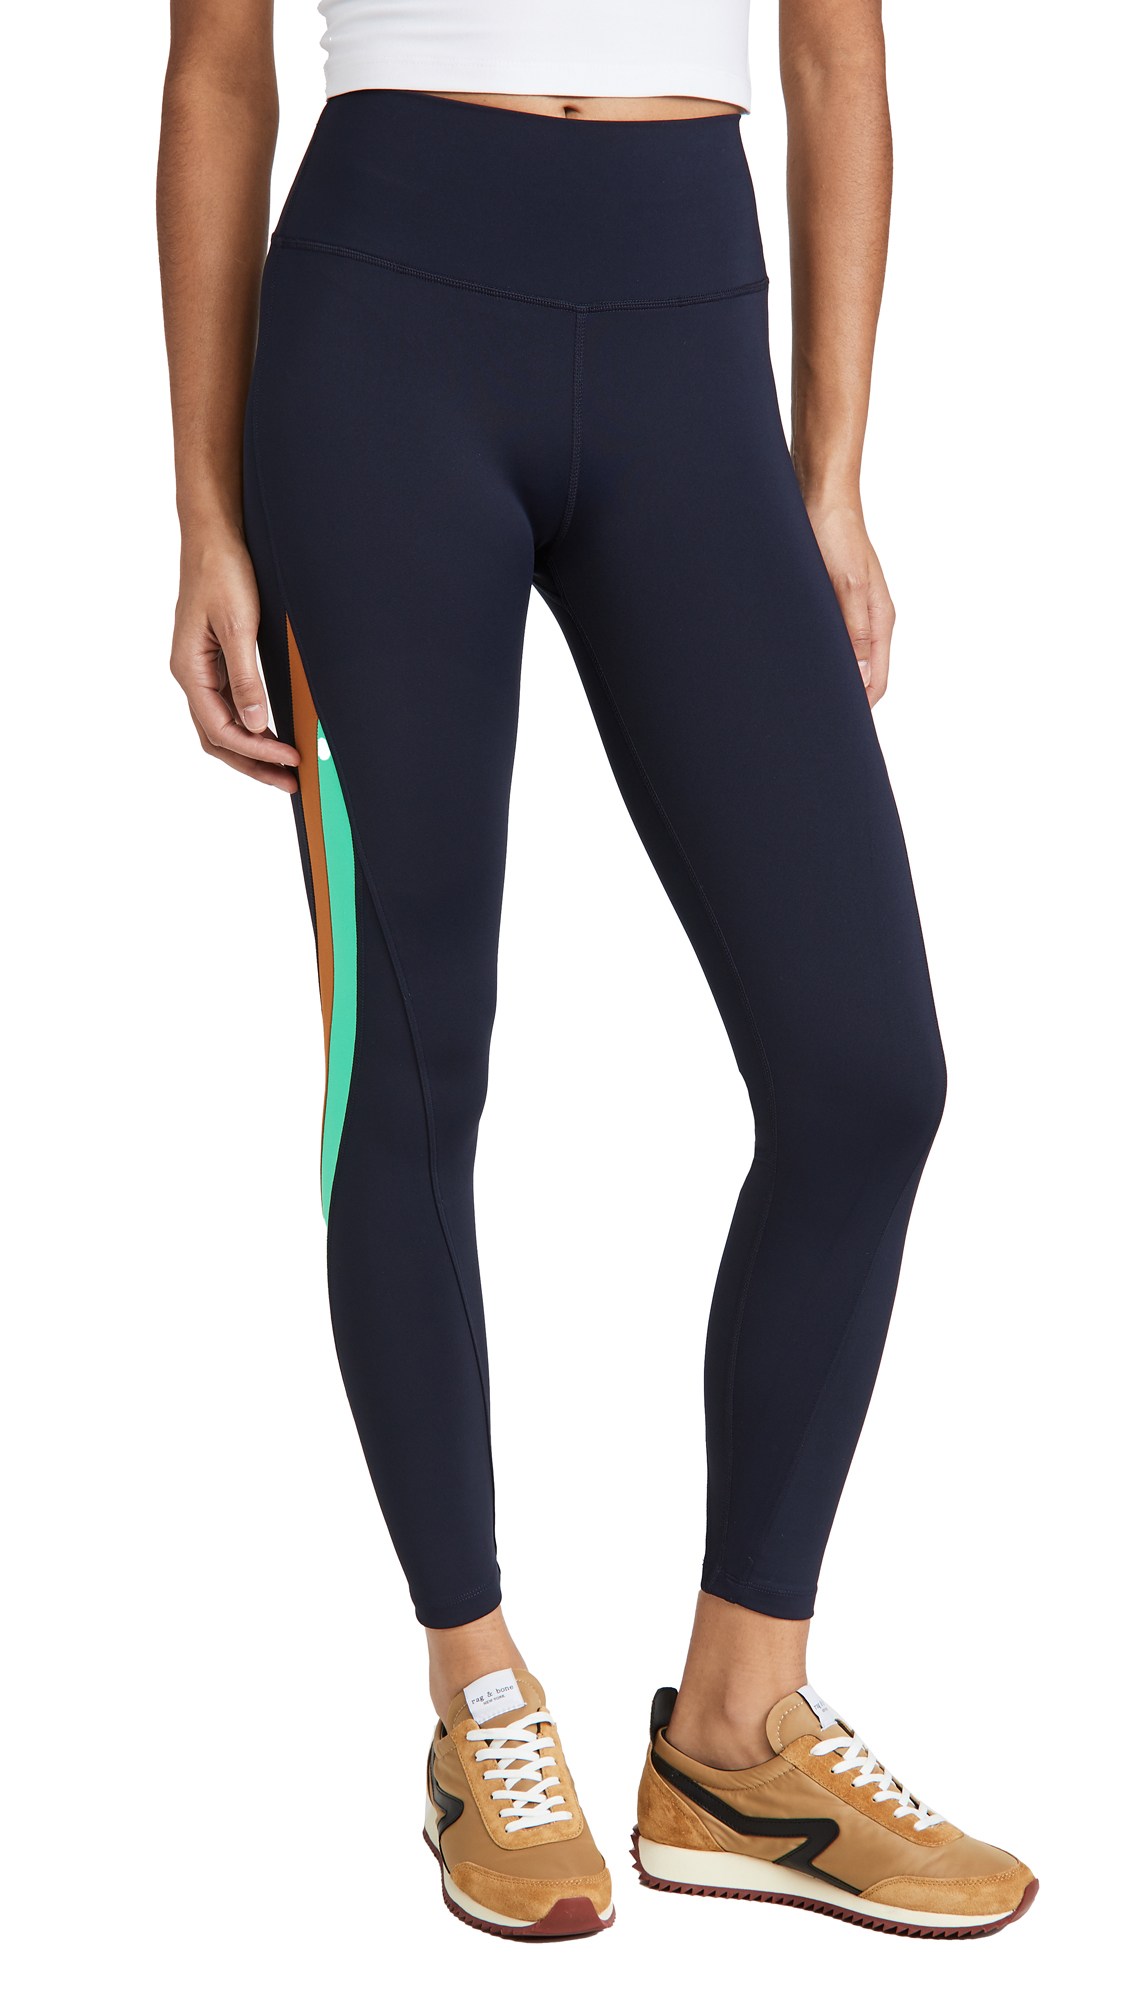 Splits59 Pierce High Waist Leggings